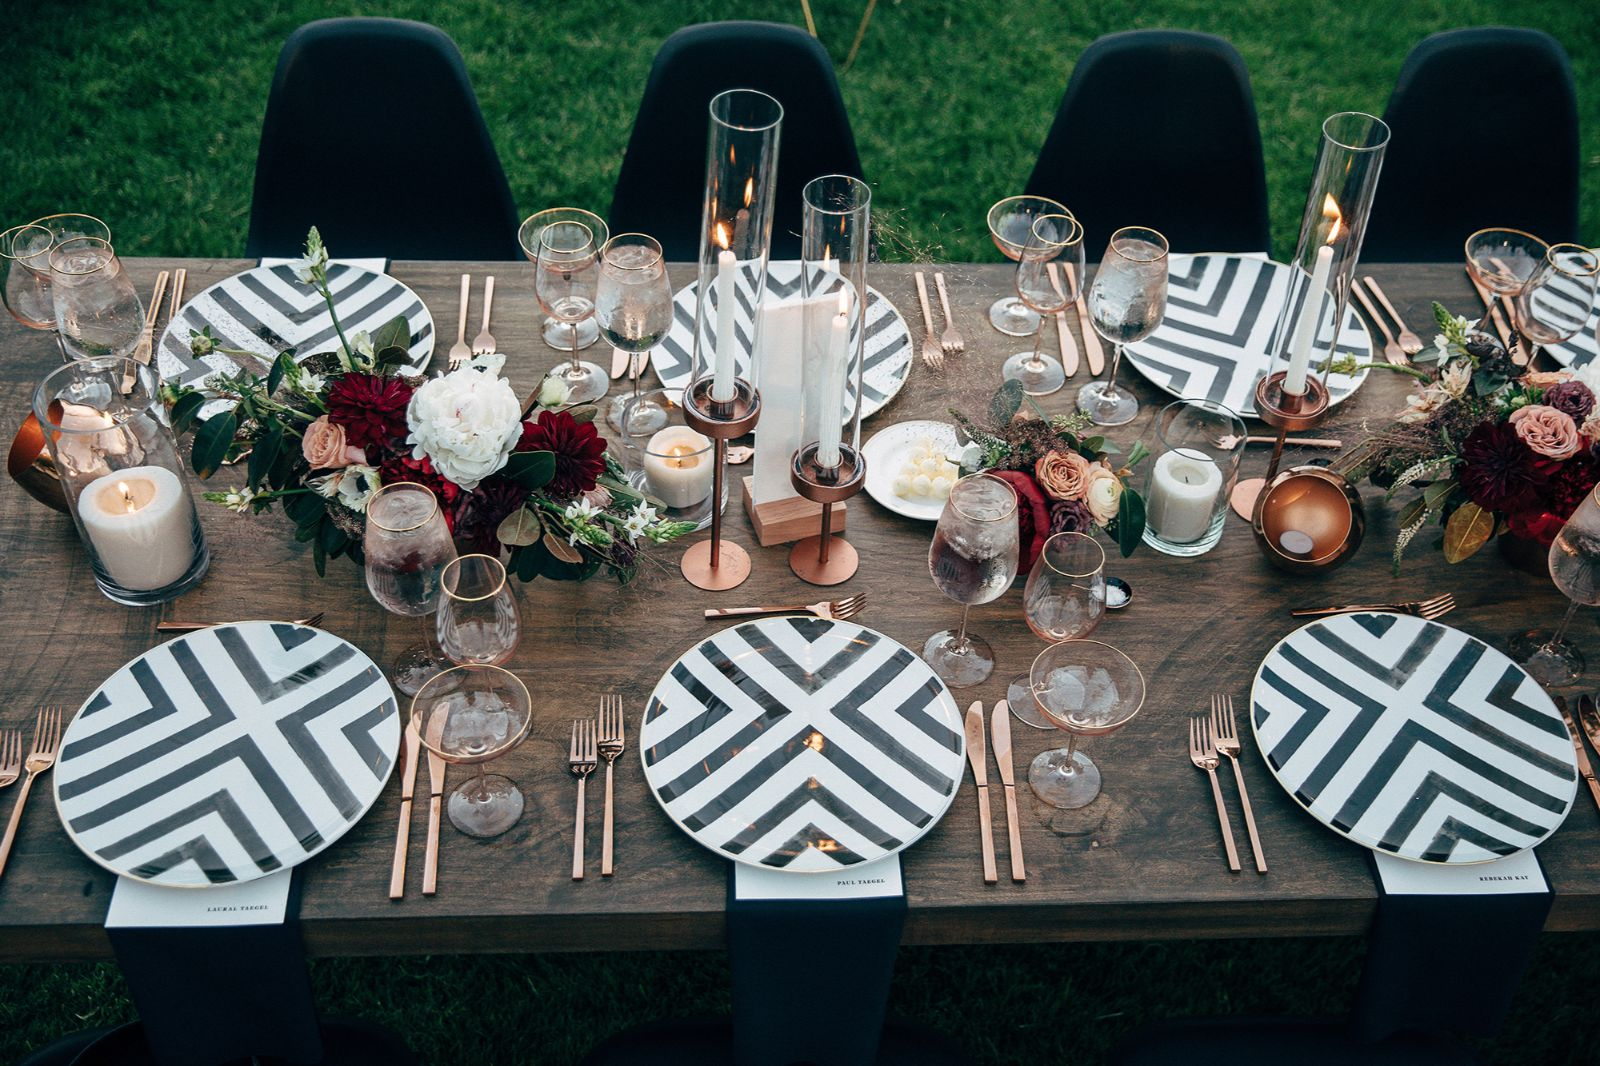 Allison Jeff Coj Events La Wedding Planner